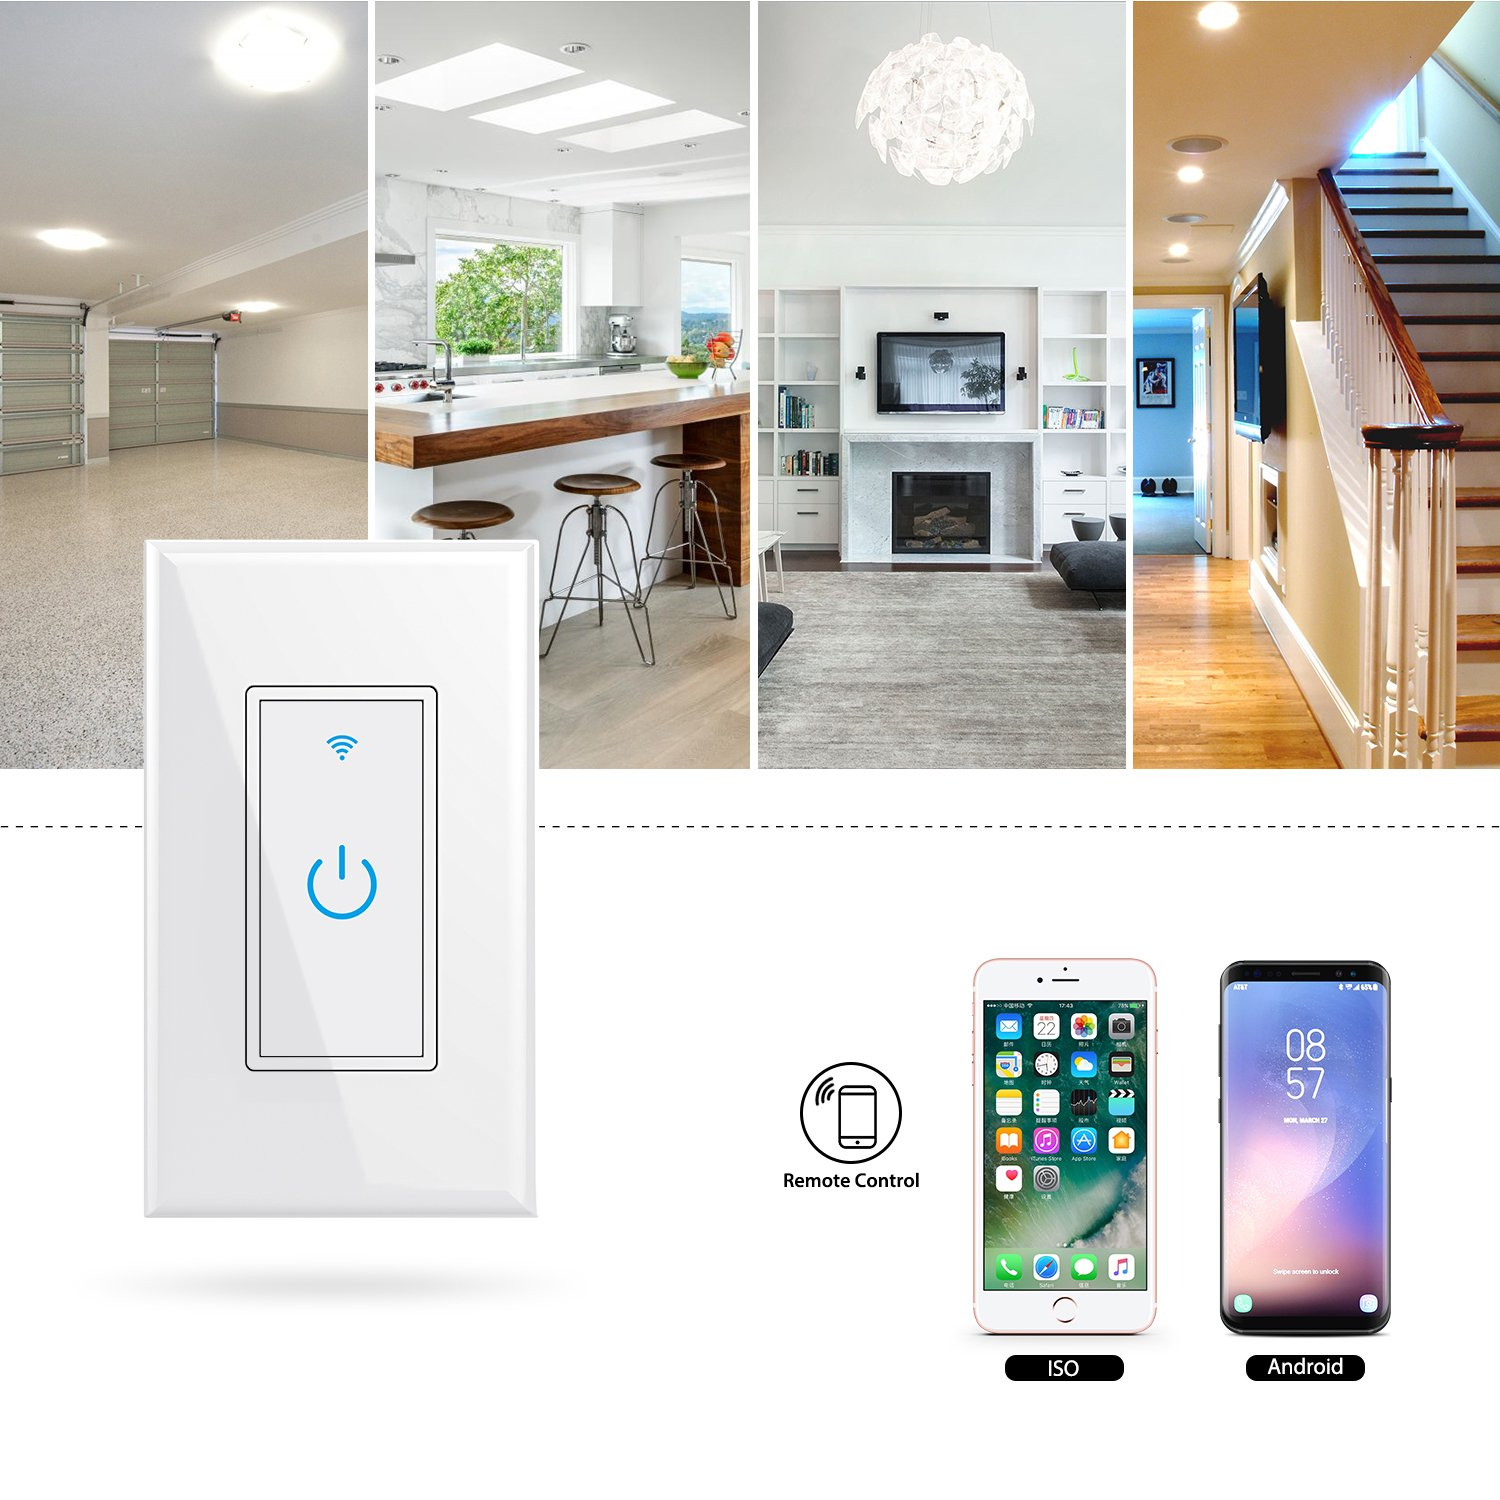 WiFi Smart Light Switch In-Wall,Phone Remote Control Wireless Switch No Hub Required,Timing Function, Automatic Control Your Fixtures From Anywhere,Compatible with Amazon Alexa,Overload Protection 15A by NewRice (Image #4)